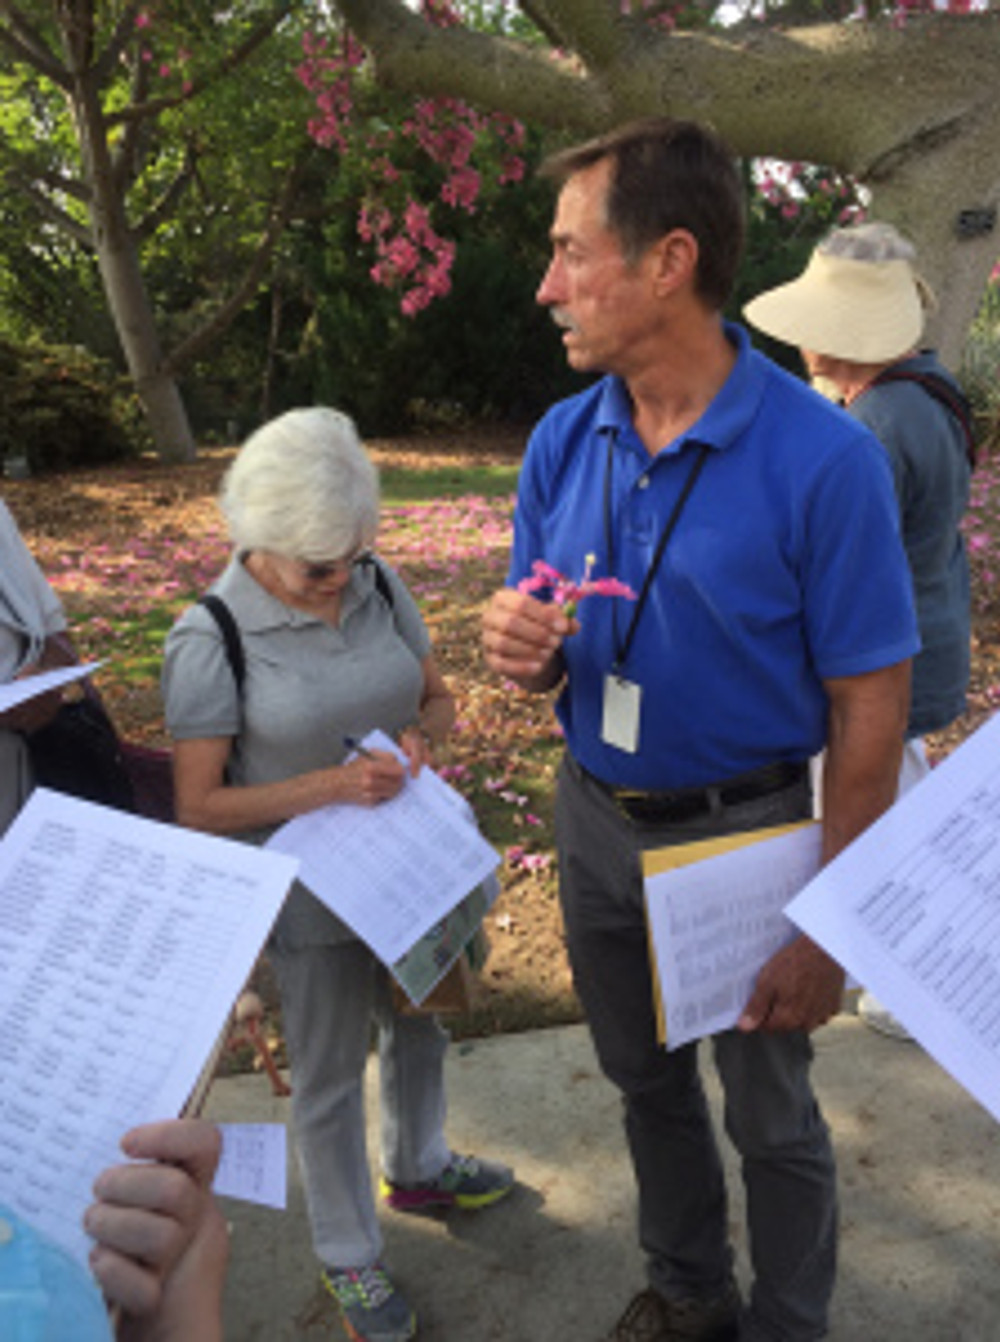 Jim Henrich, Curator of Living Collections, Los Angeles Arboretum, lectures about their tree collection. Photo by Clara Josephs, © 2015, all rights reserved.